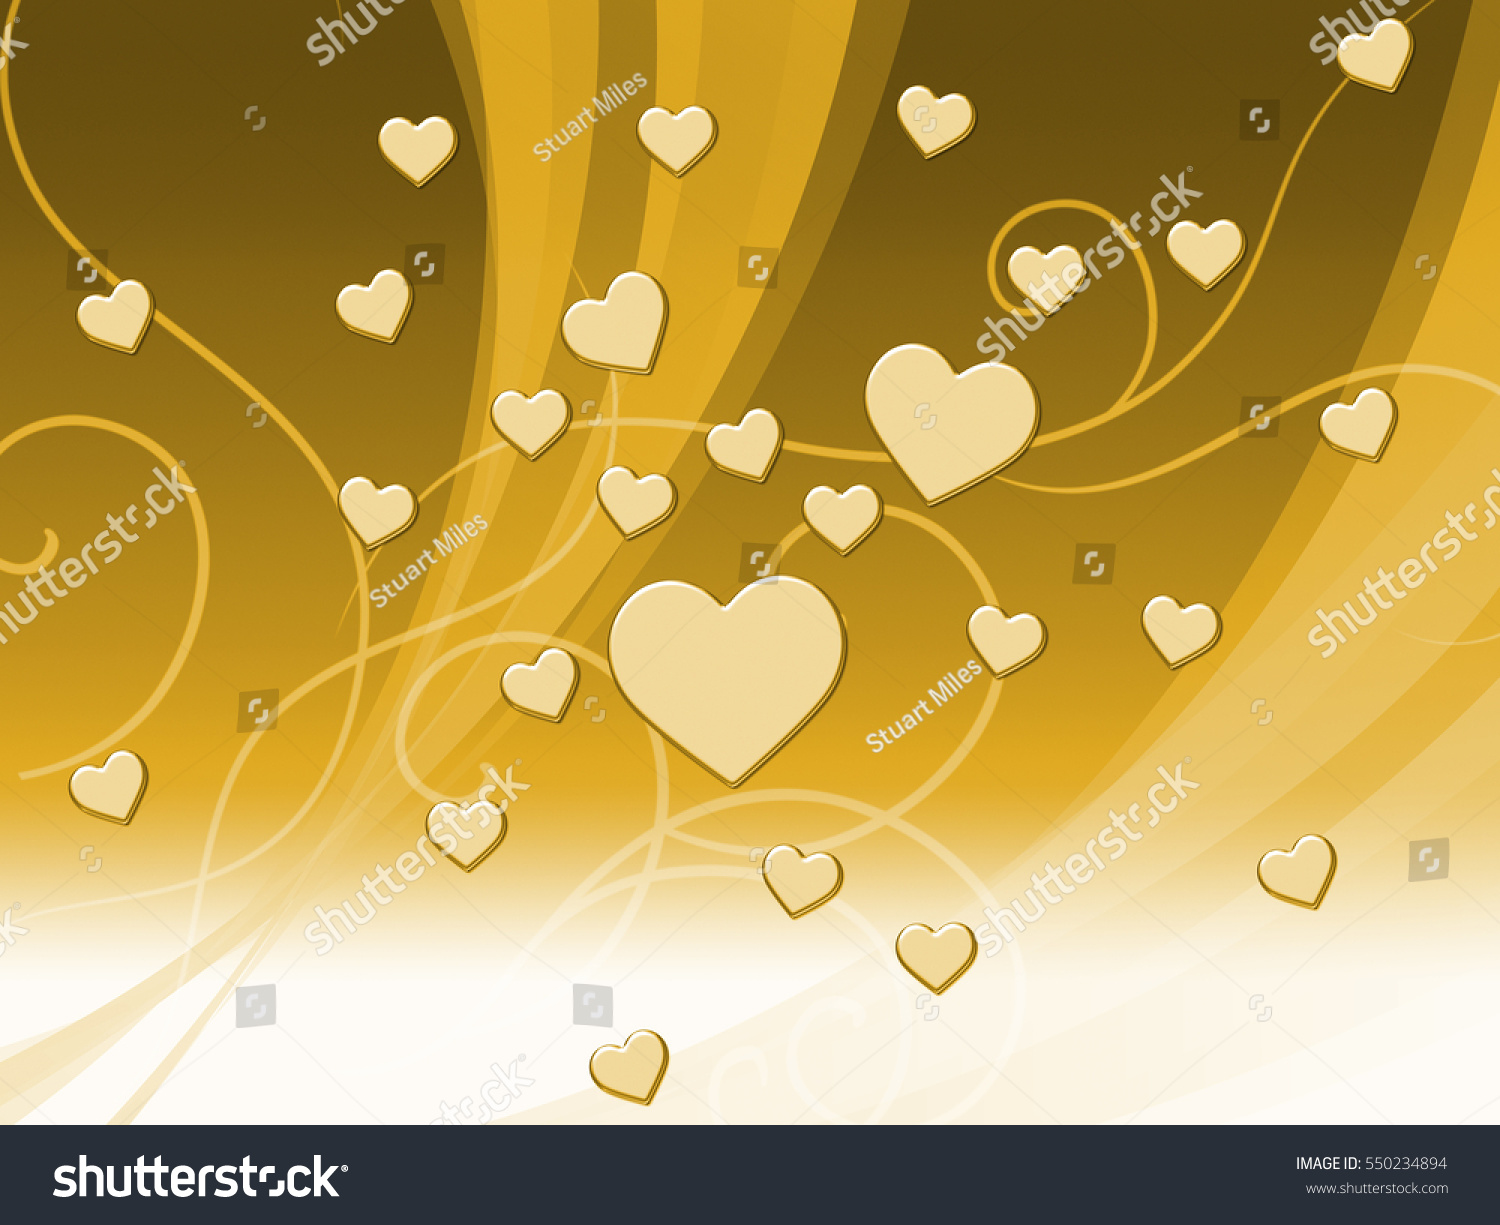 Elegant Brown Hearts Background Meaning Delicate Stock